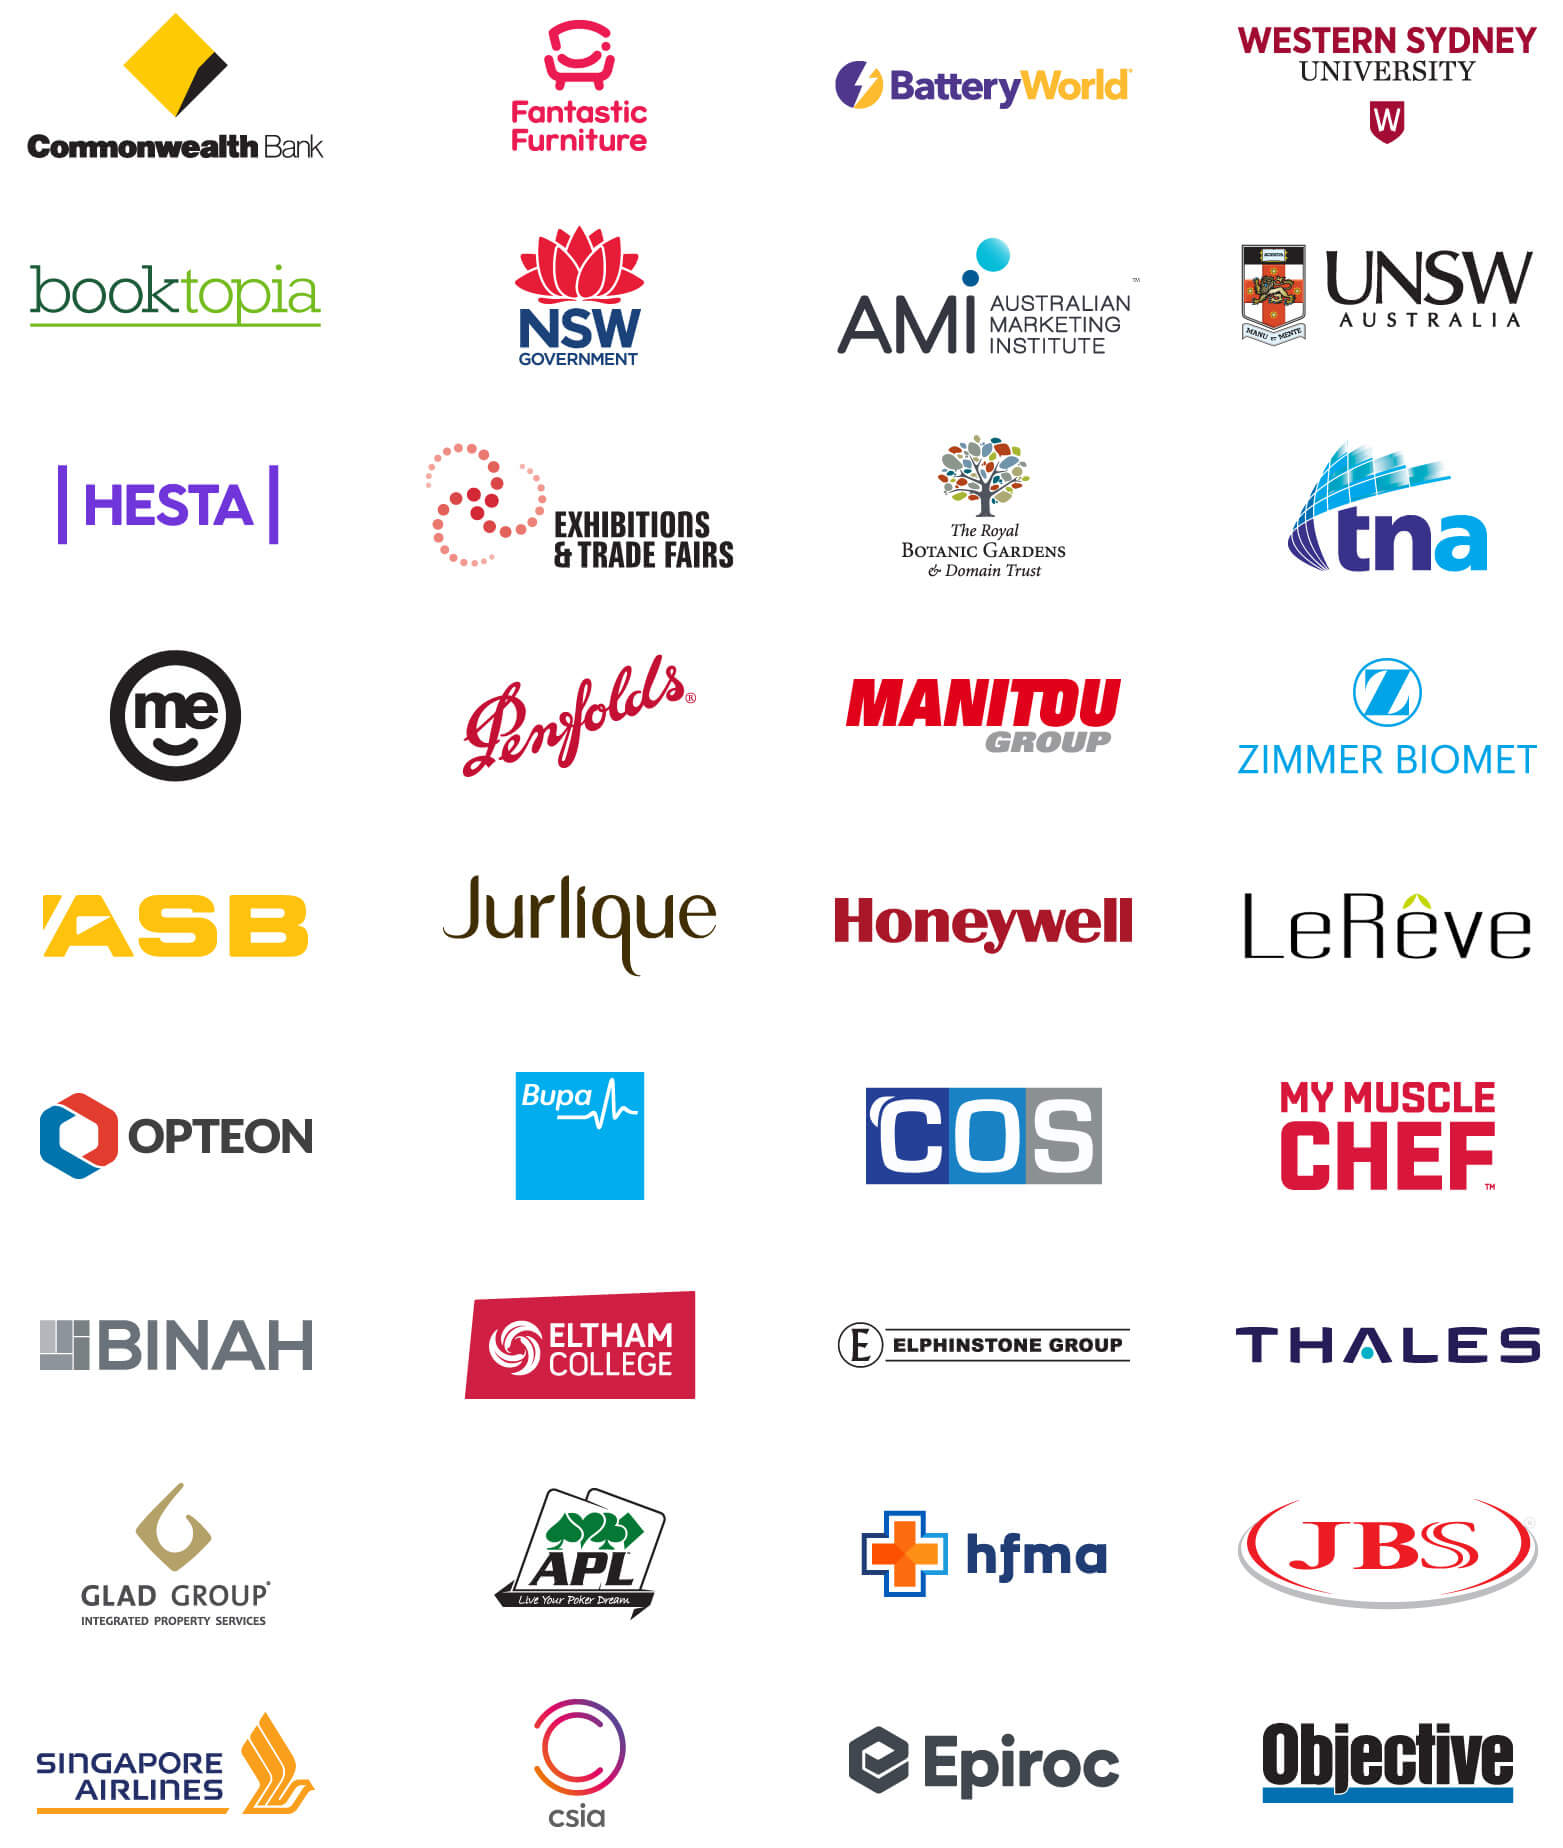 companies we've partnered with